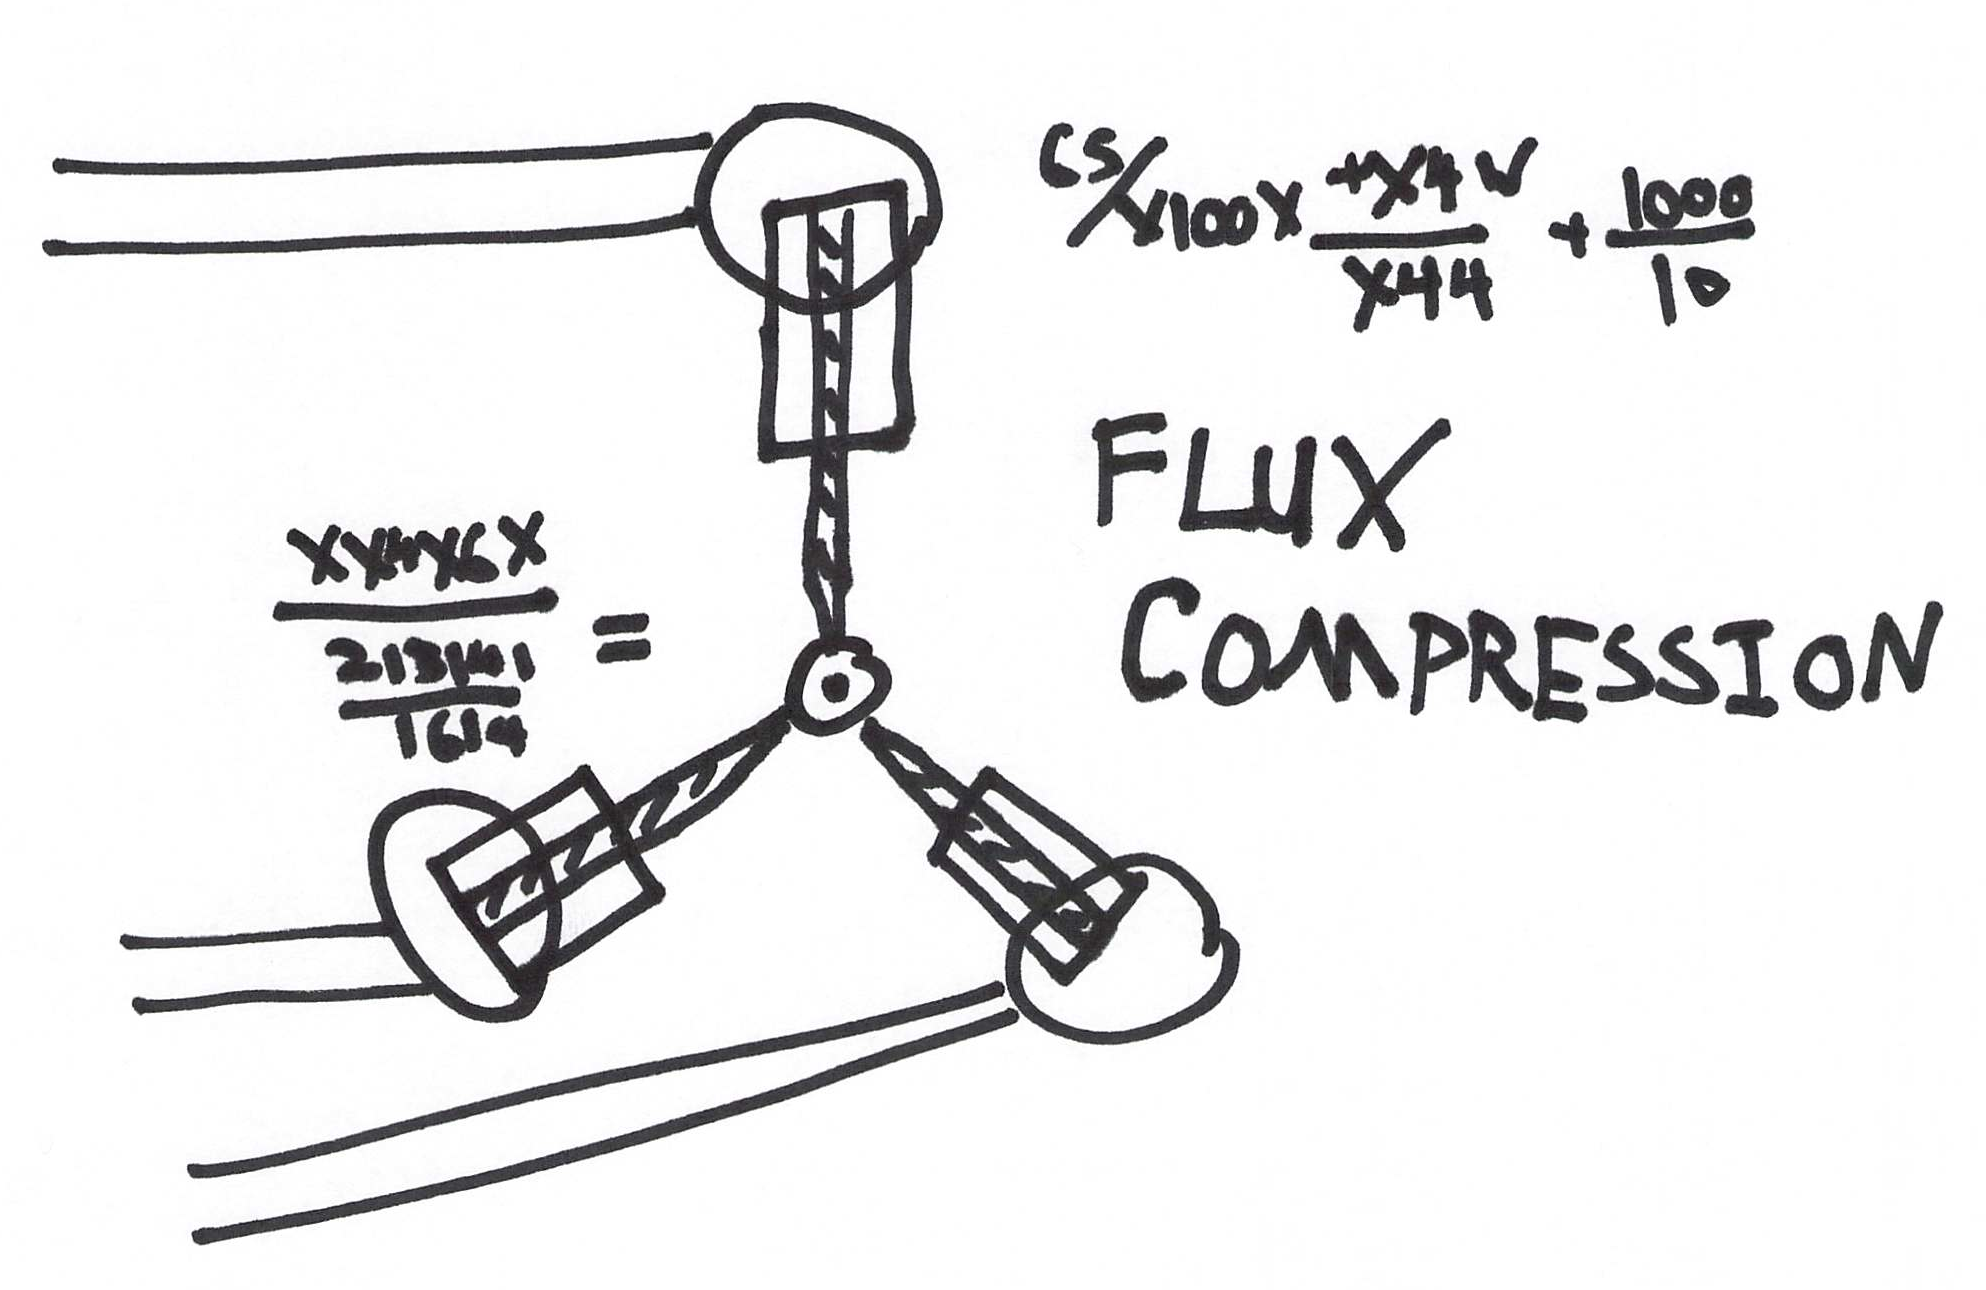 flux capacitor - a back to the future moment